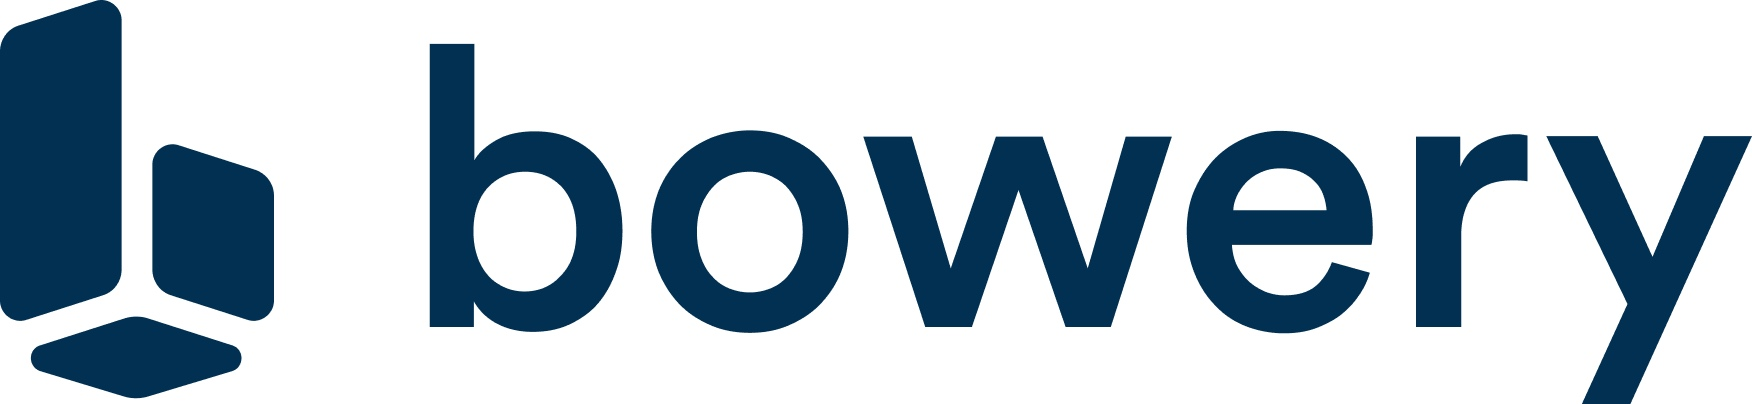 Bowery Valuation Logo PNG